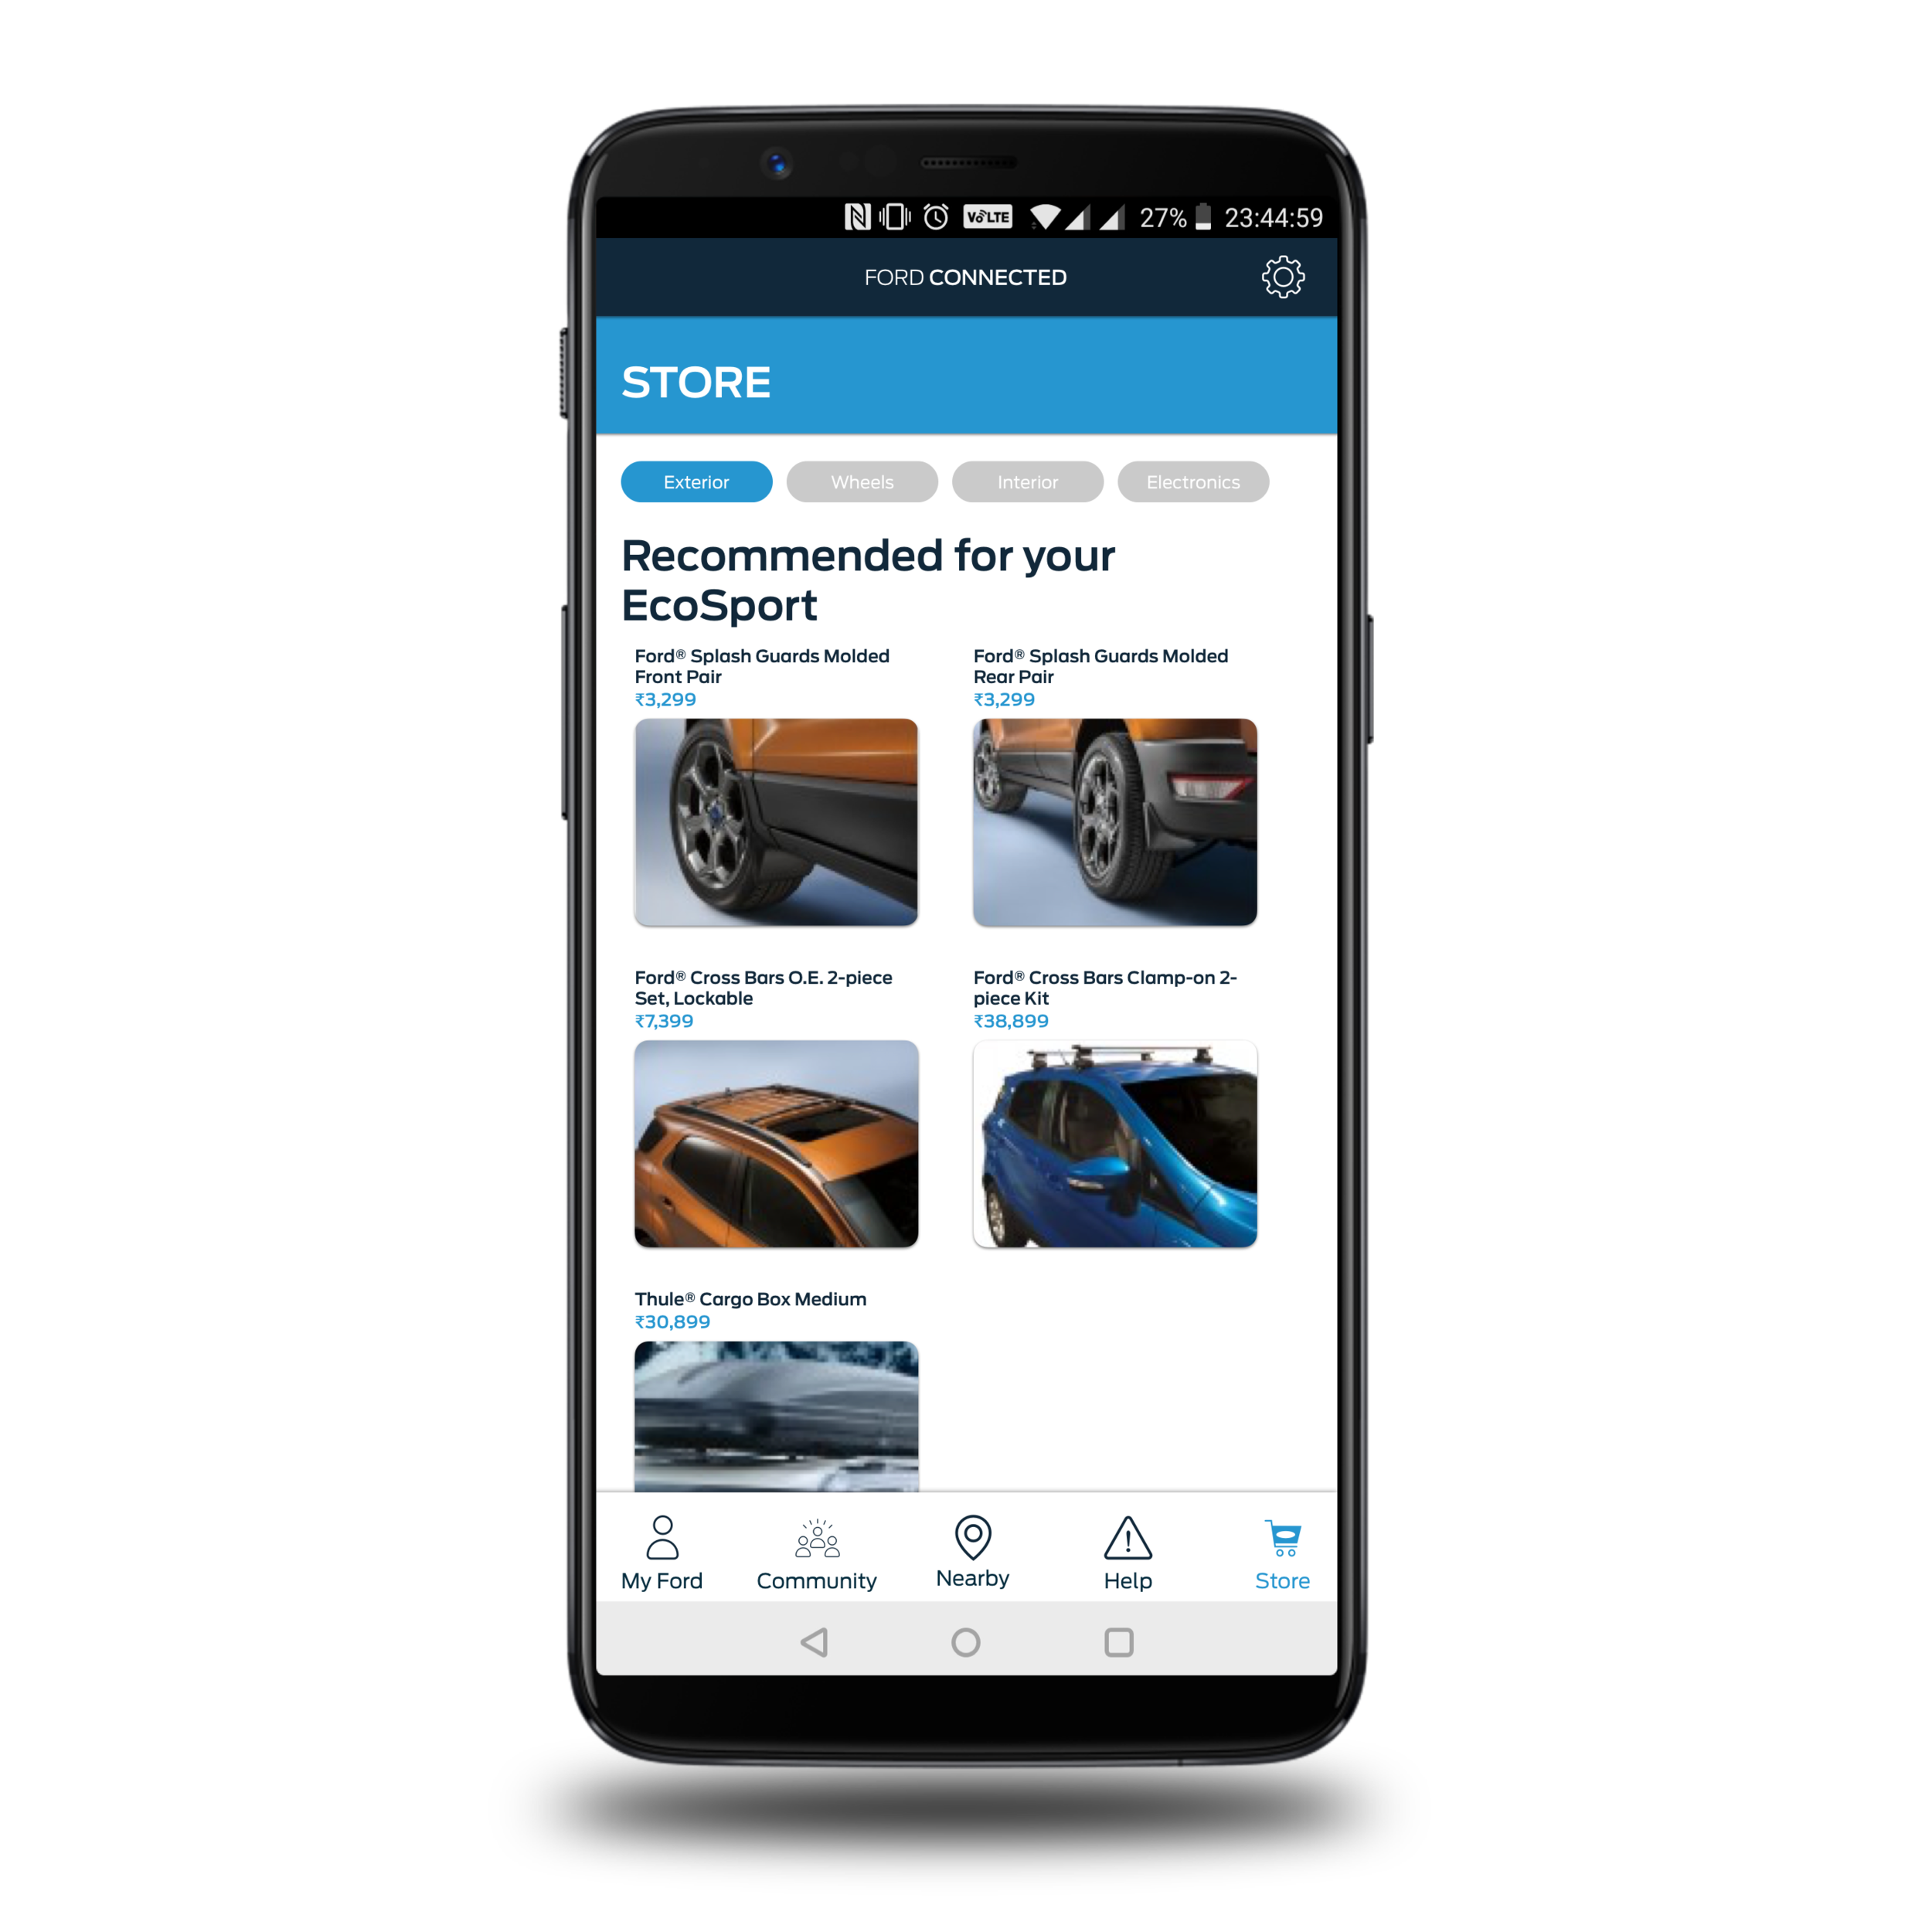 Aftermarket store - An aftermarket store tab for all the accessories, spares, maintenance tools, straight from Ford, in one place.